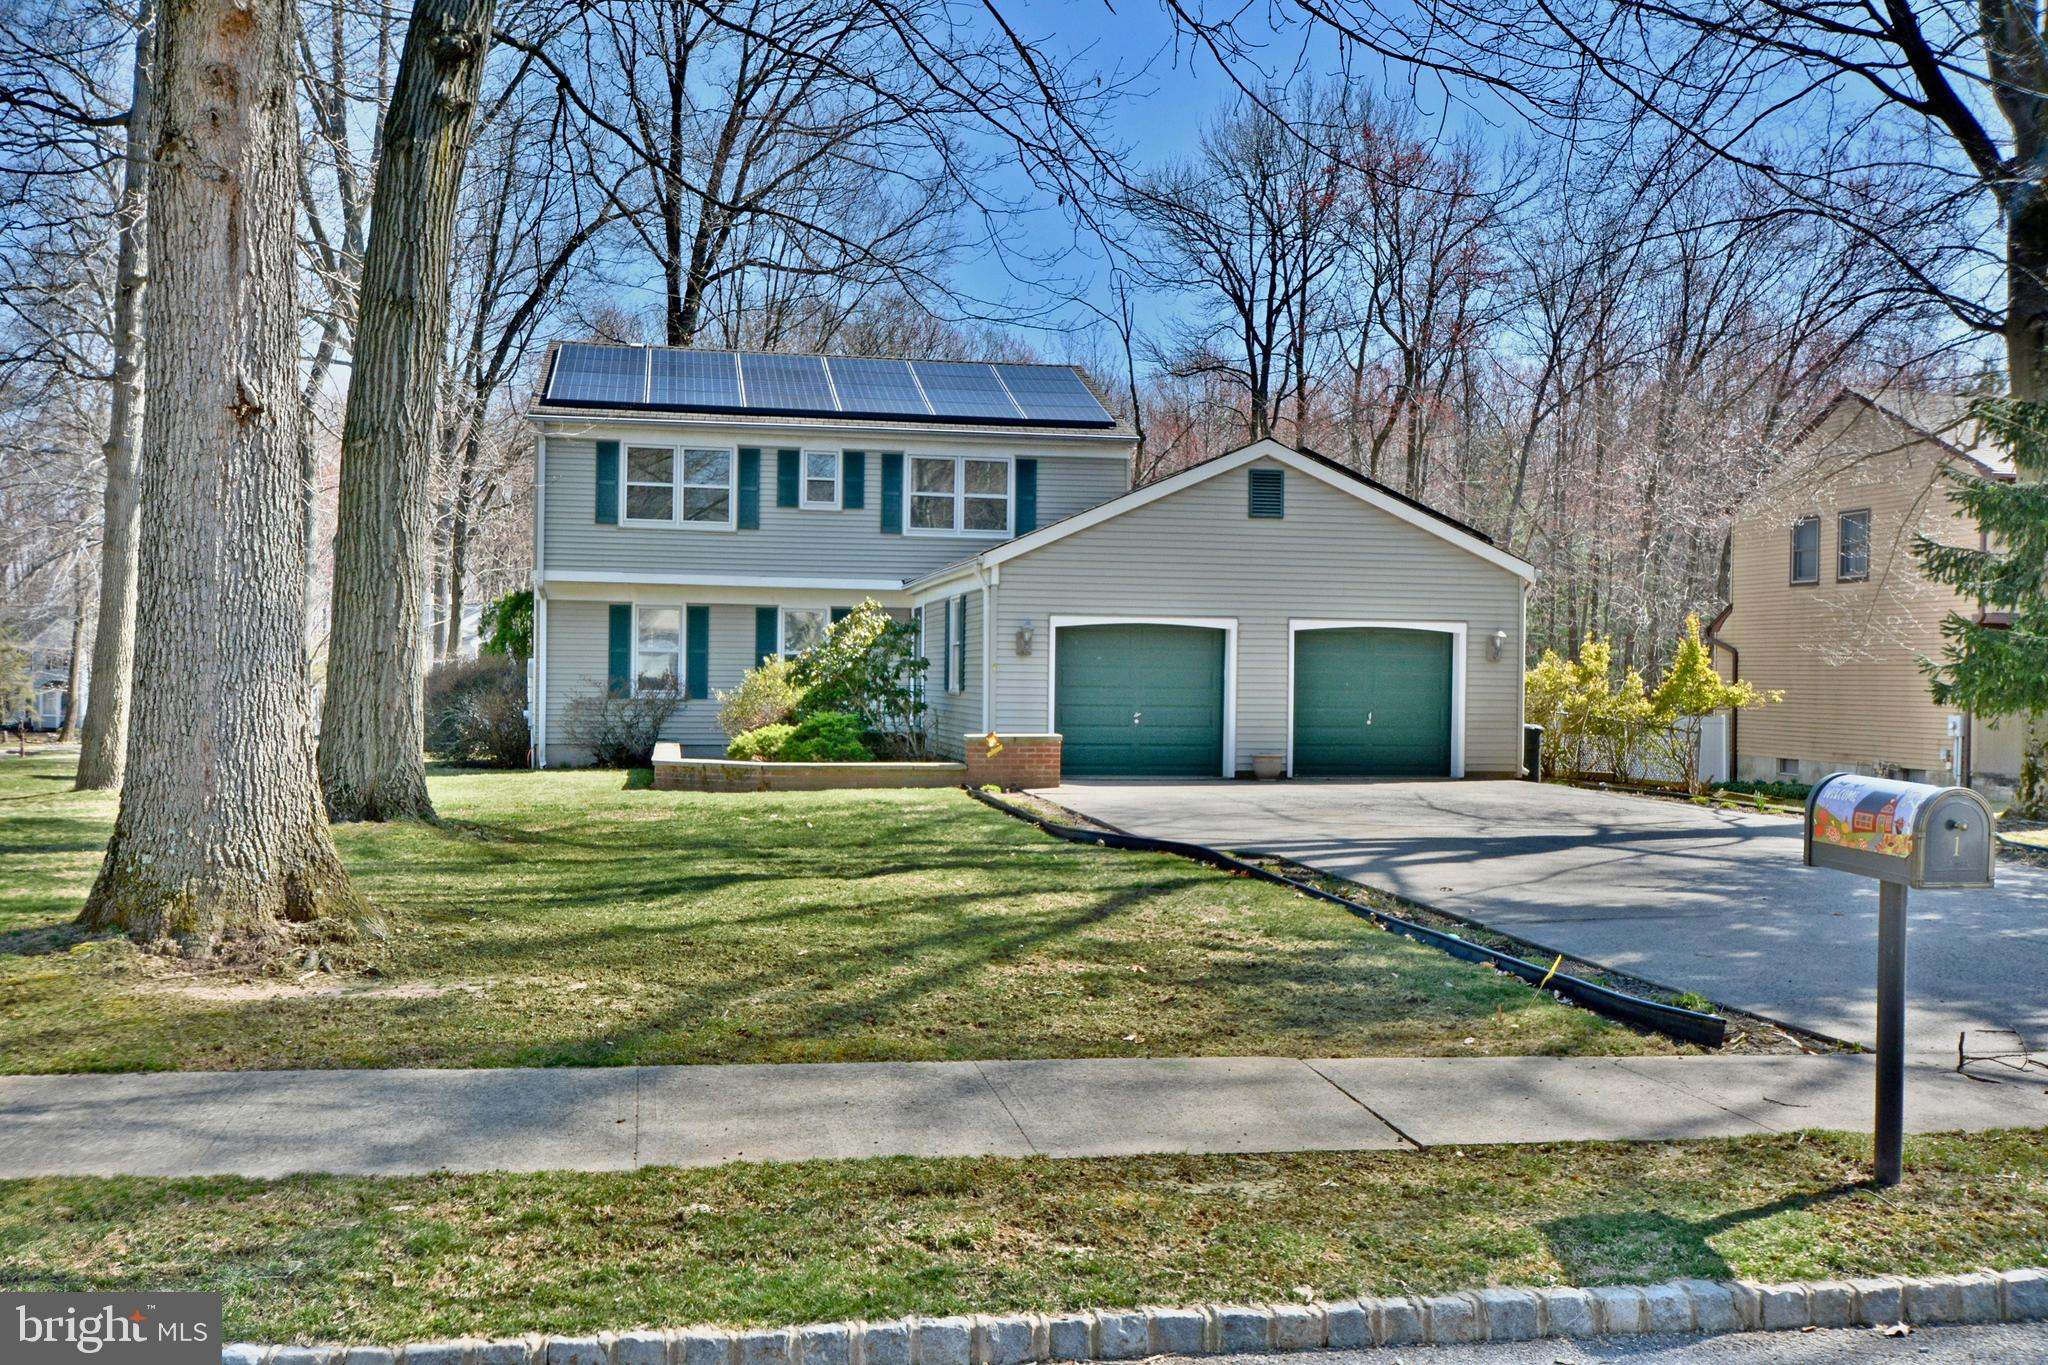 1 SHADY LANE, KENDALL PARK, NJ 08824